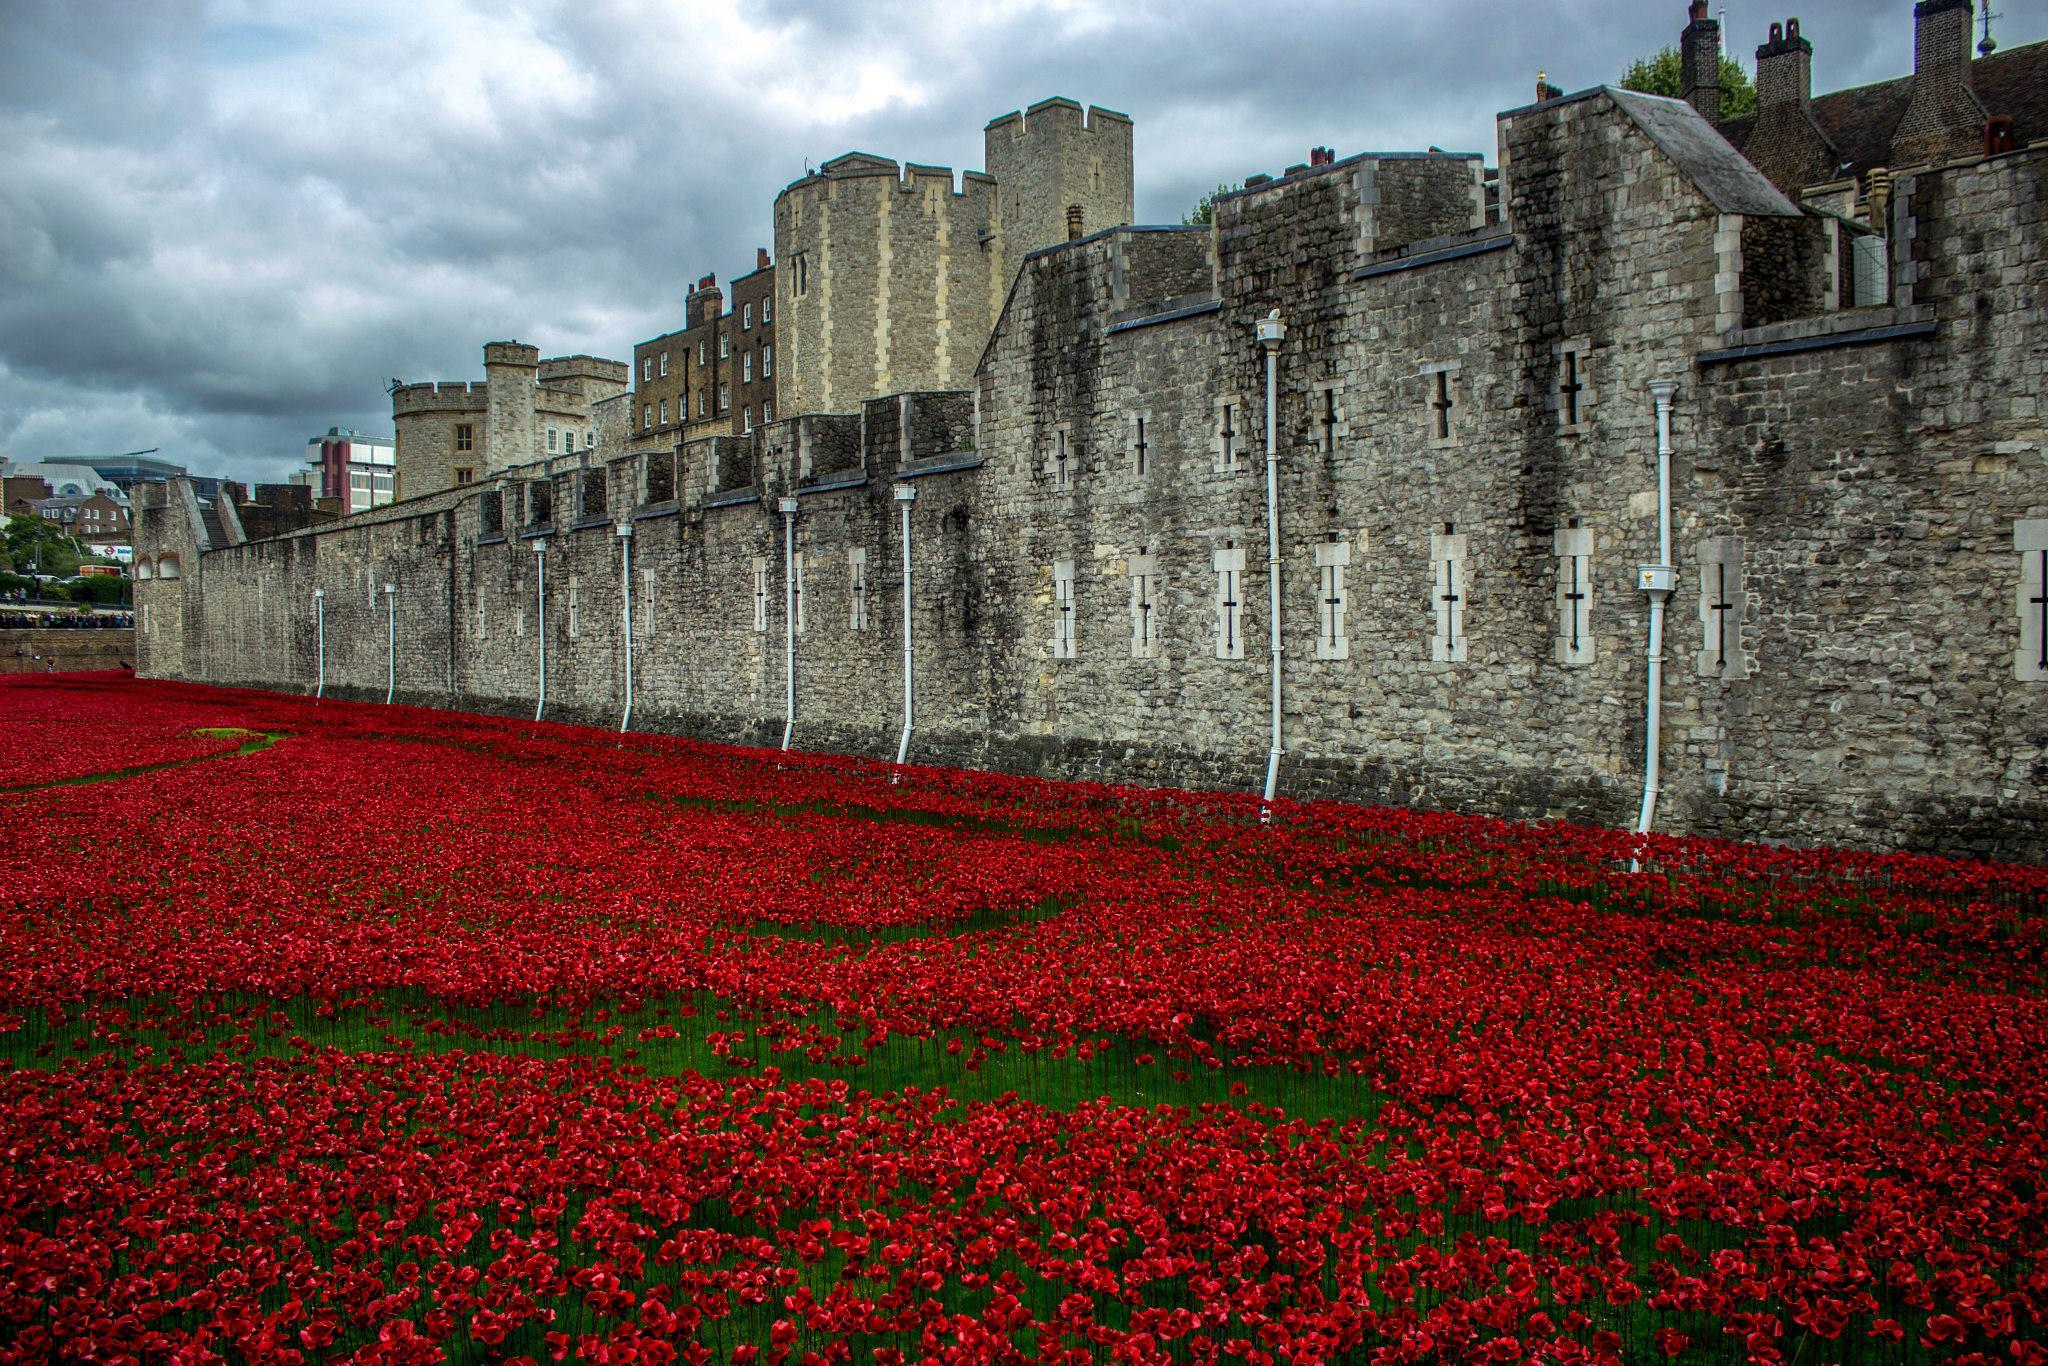 Poppies at The Tower of London, U.K. by Xanthe Towler